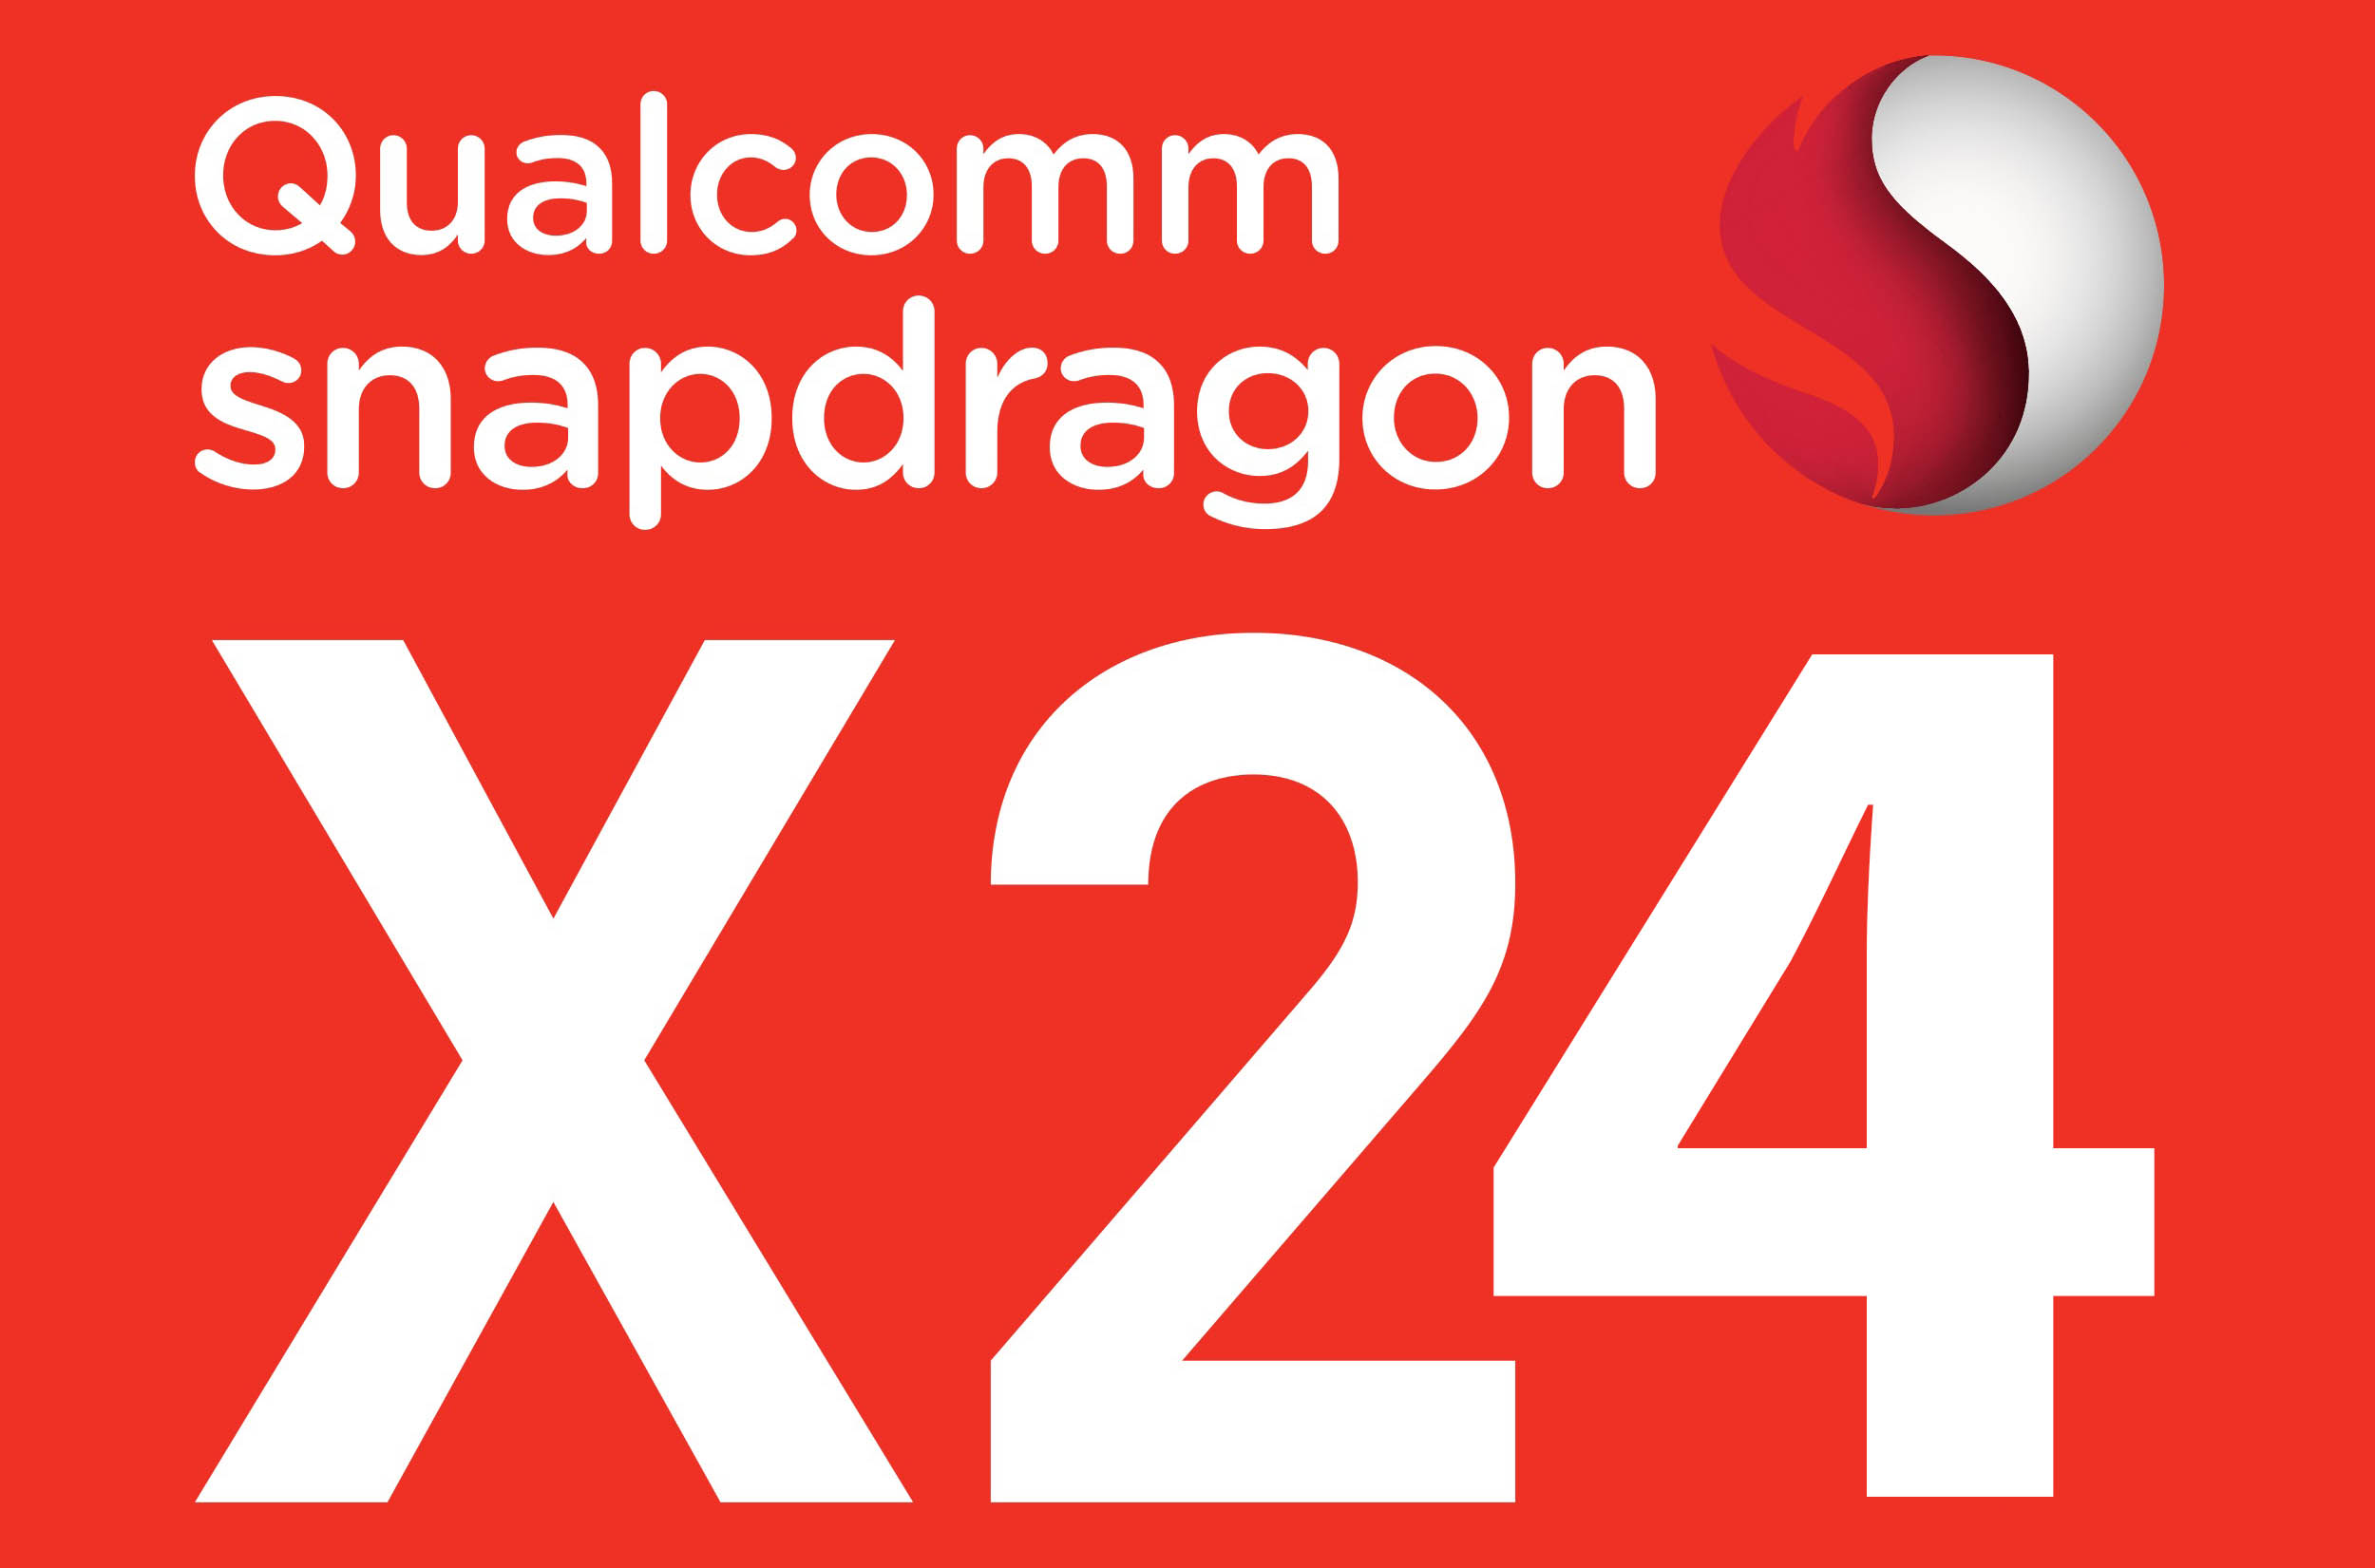 Qualcomm Snapdragon X24 2 Gbps download speed